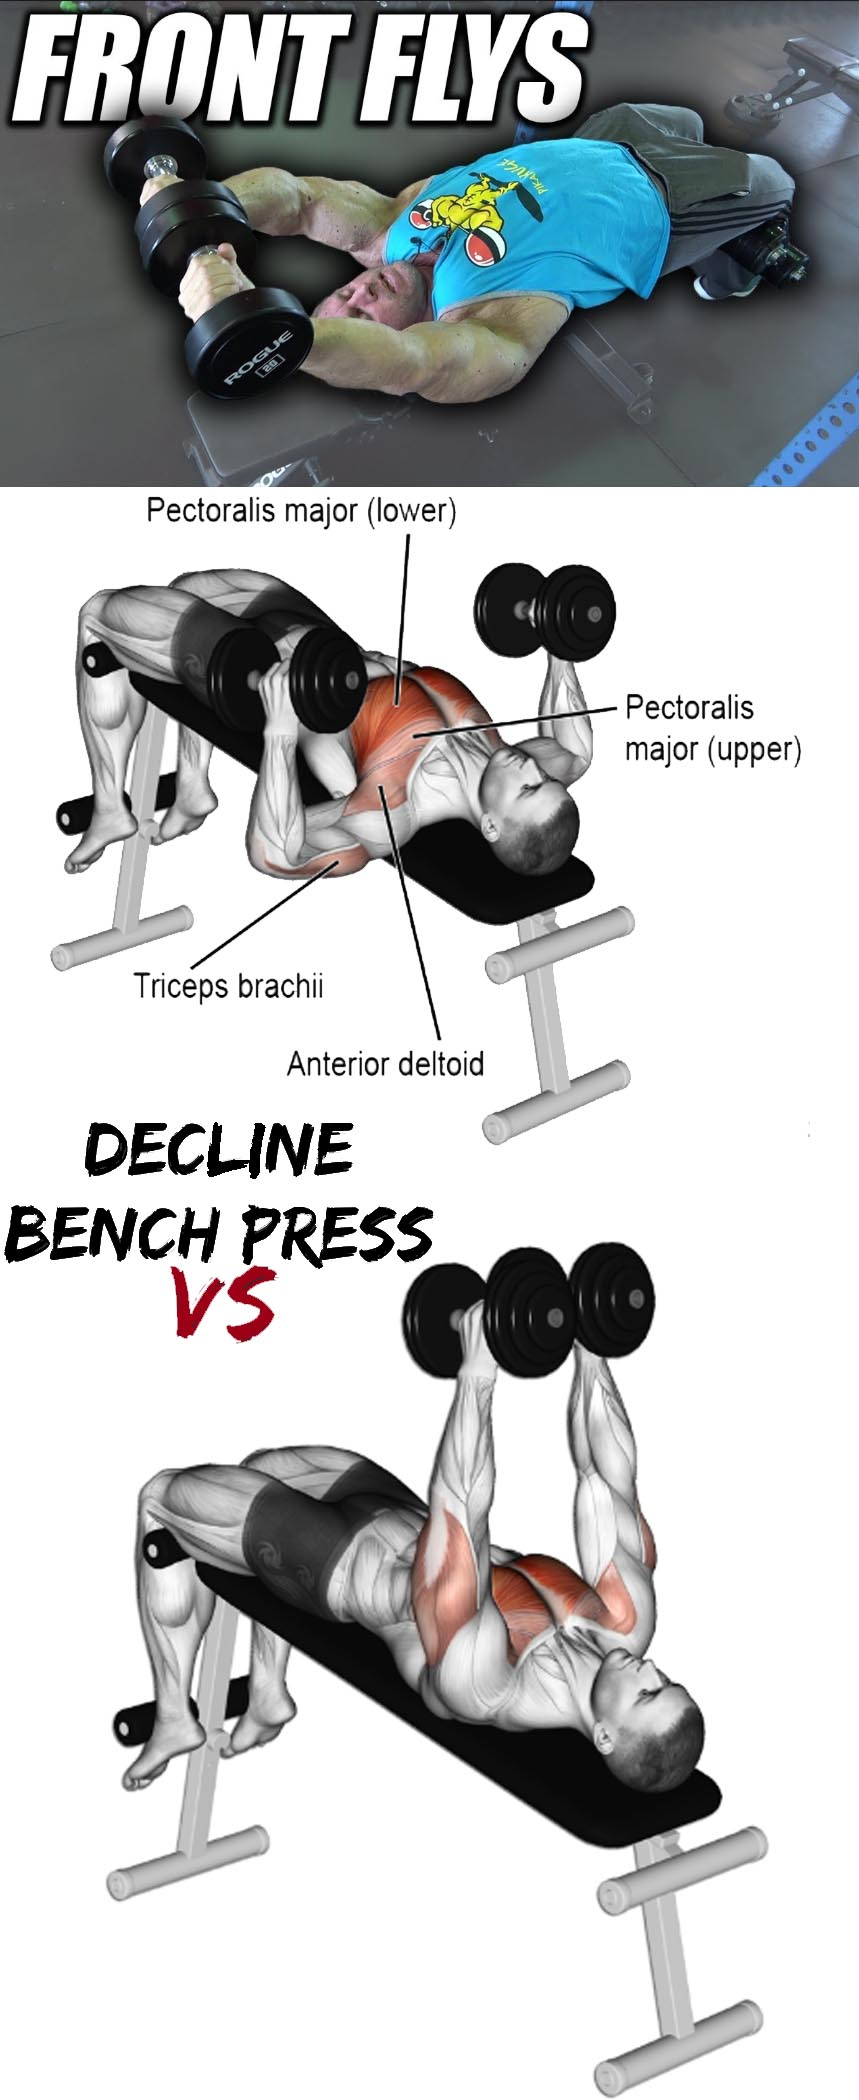 Front Flys VS Decline Bench Press